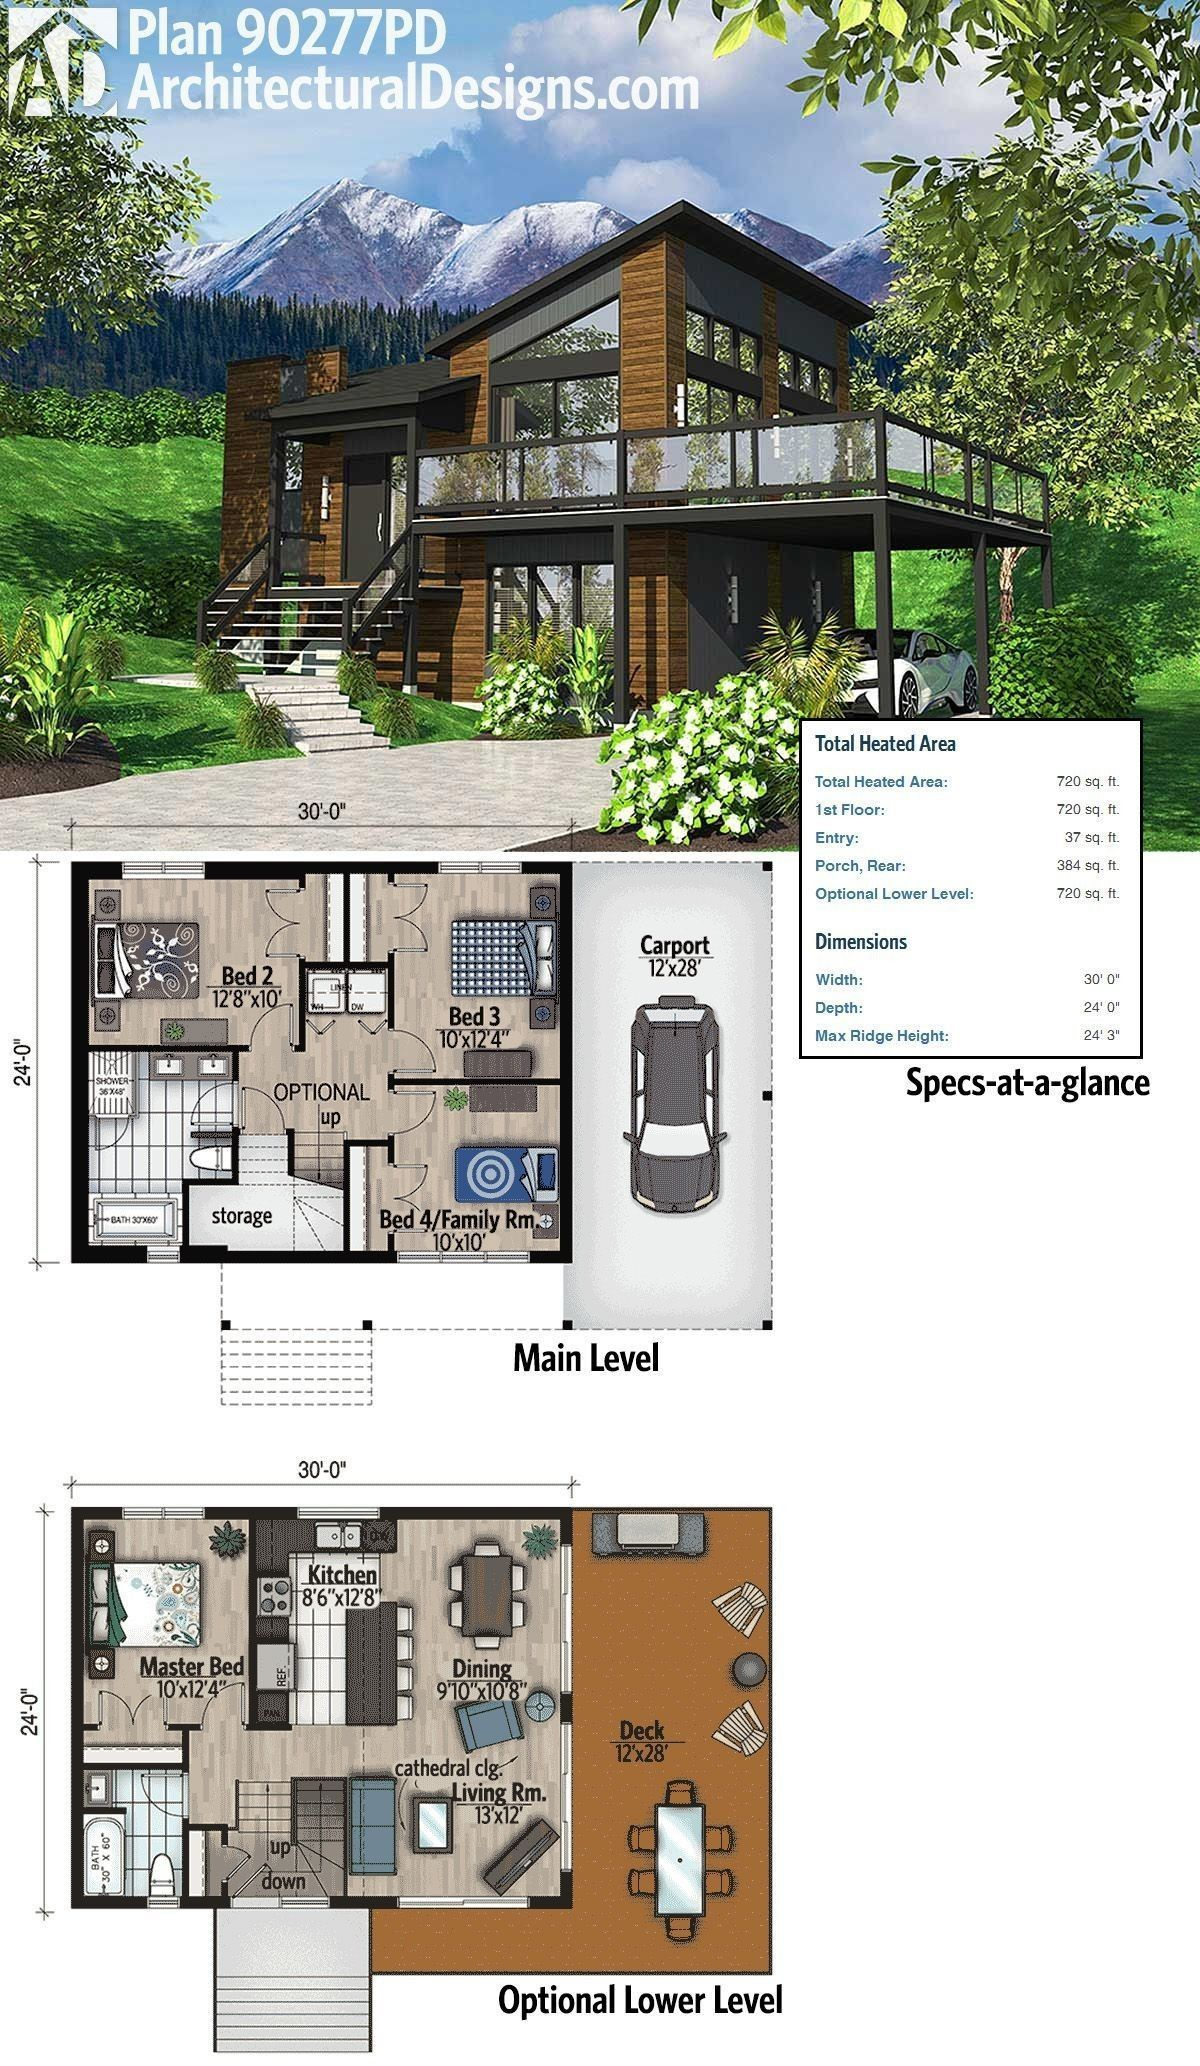 Best Contemporary House Plans 2020 In 2020 Modern House Floor Plans Contemporary House Design Sims House Plans